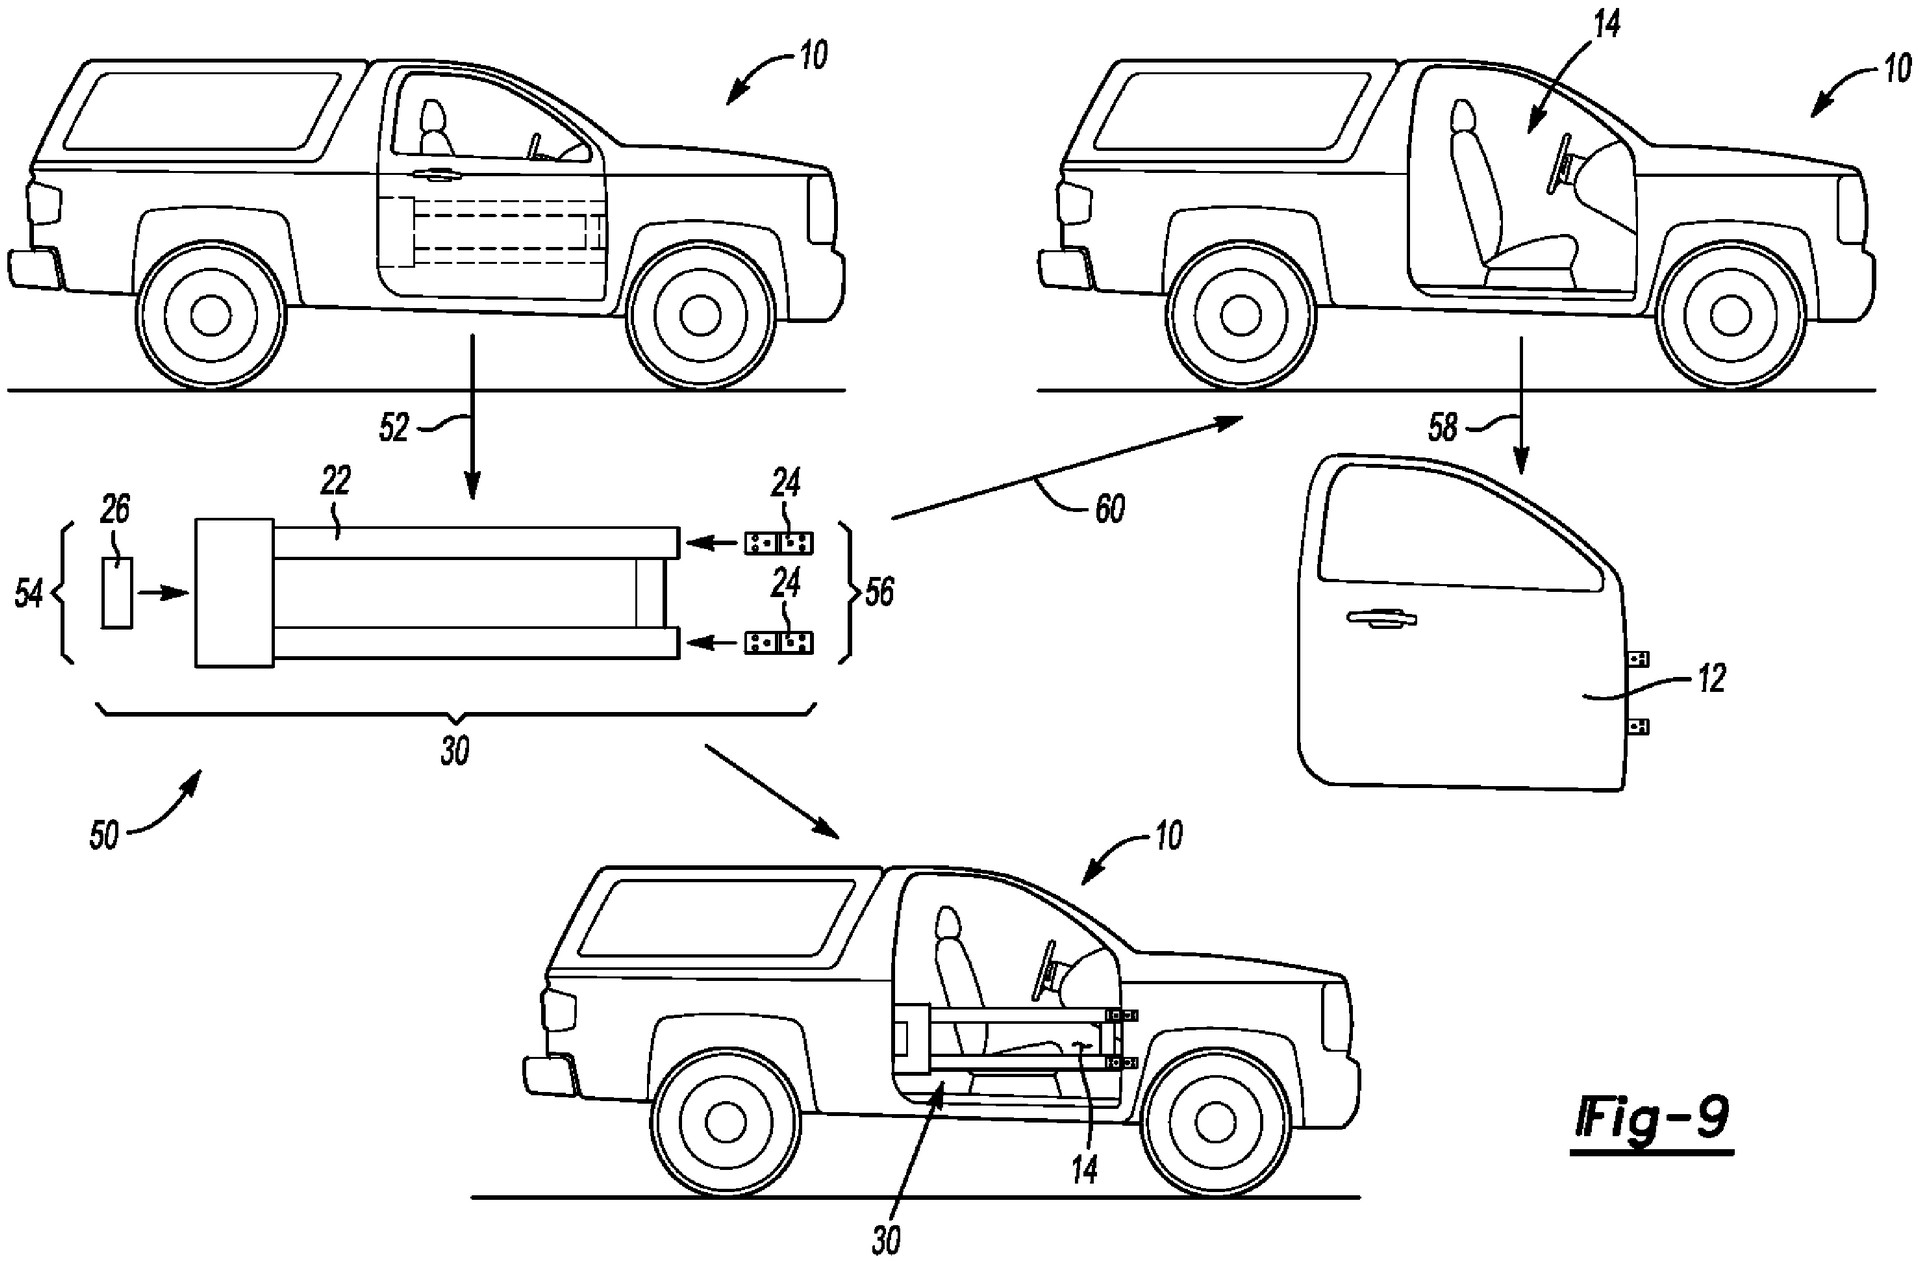 Ford Patent Hints At 2-In-1 Removable Doors, Could They